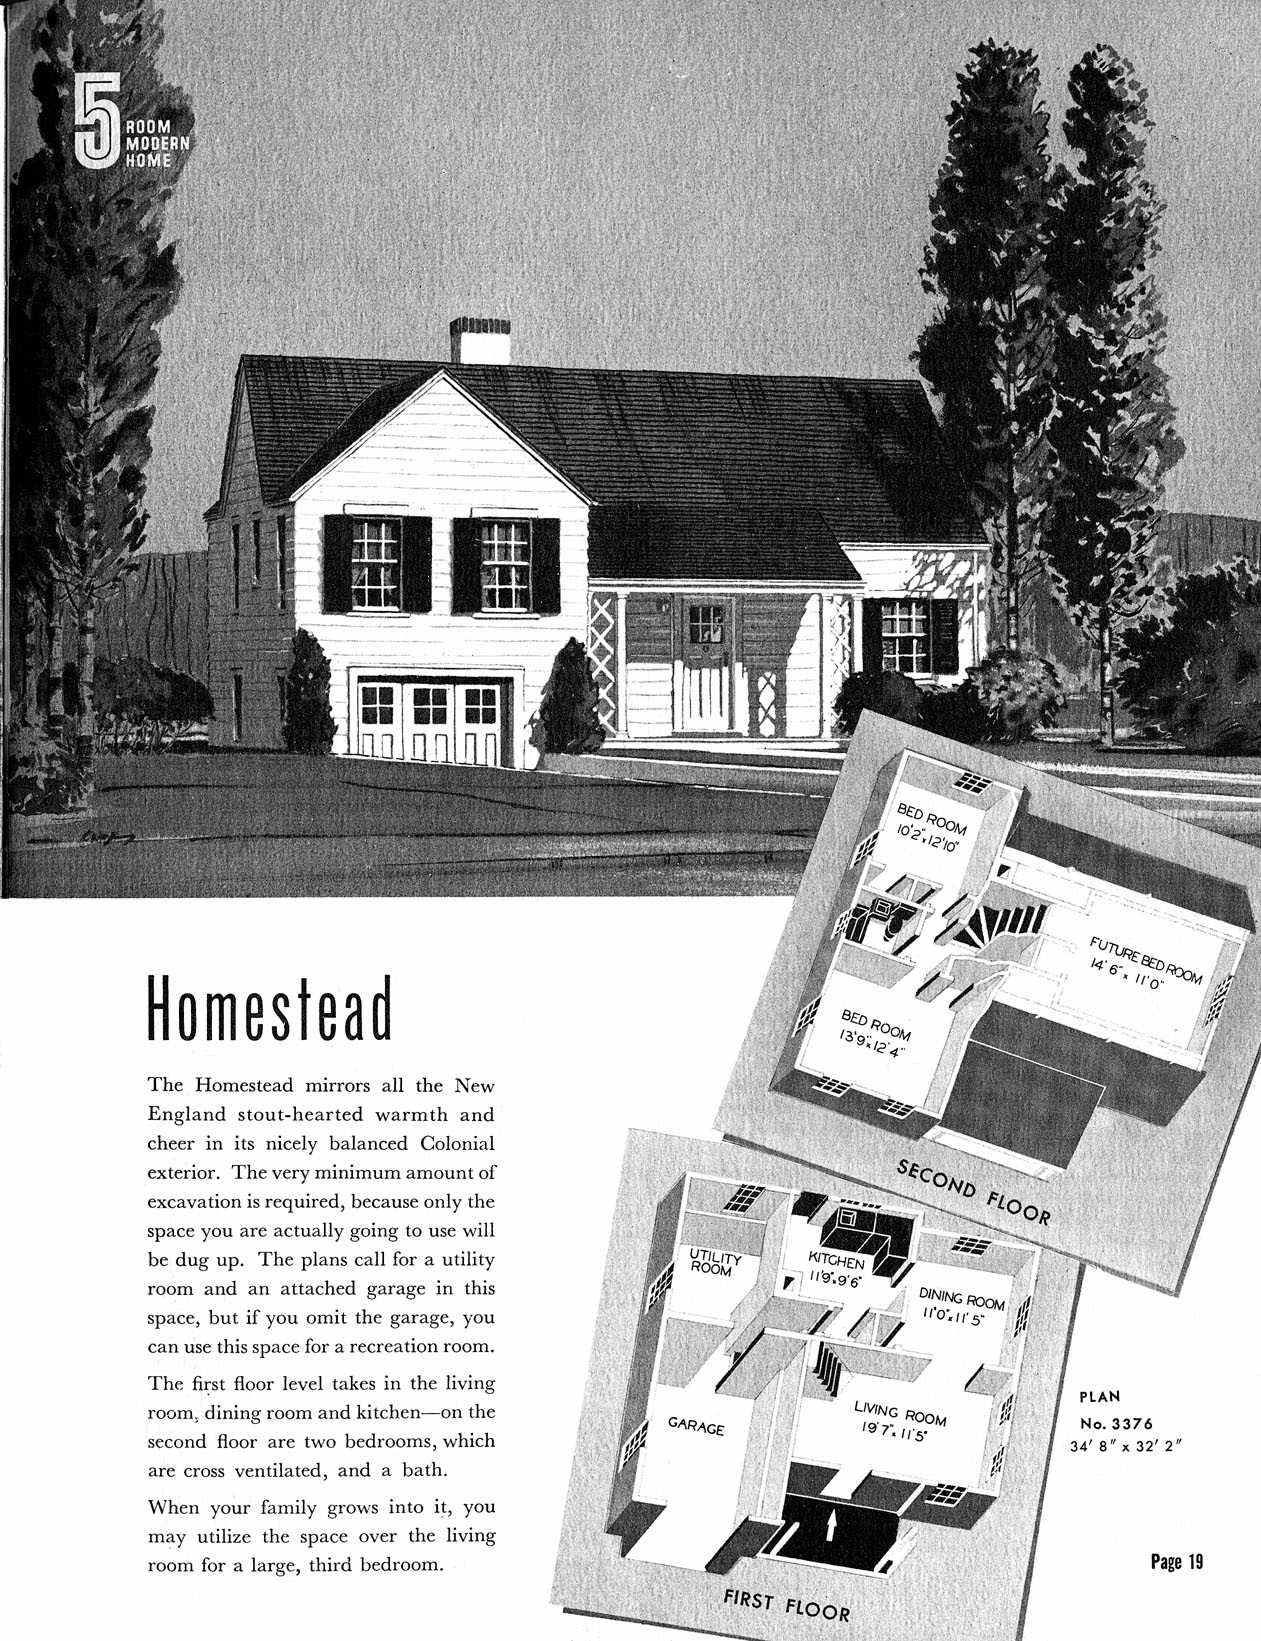 Sears Homestead Plan No. 3376 The Book Of Modern Homes By Sears, Roebuck  And Co.